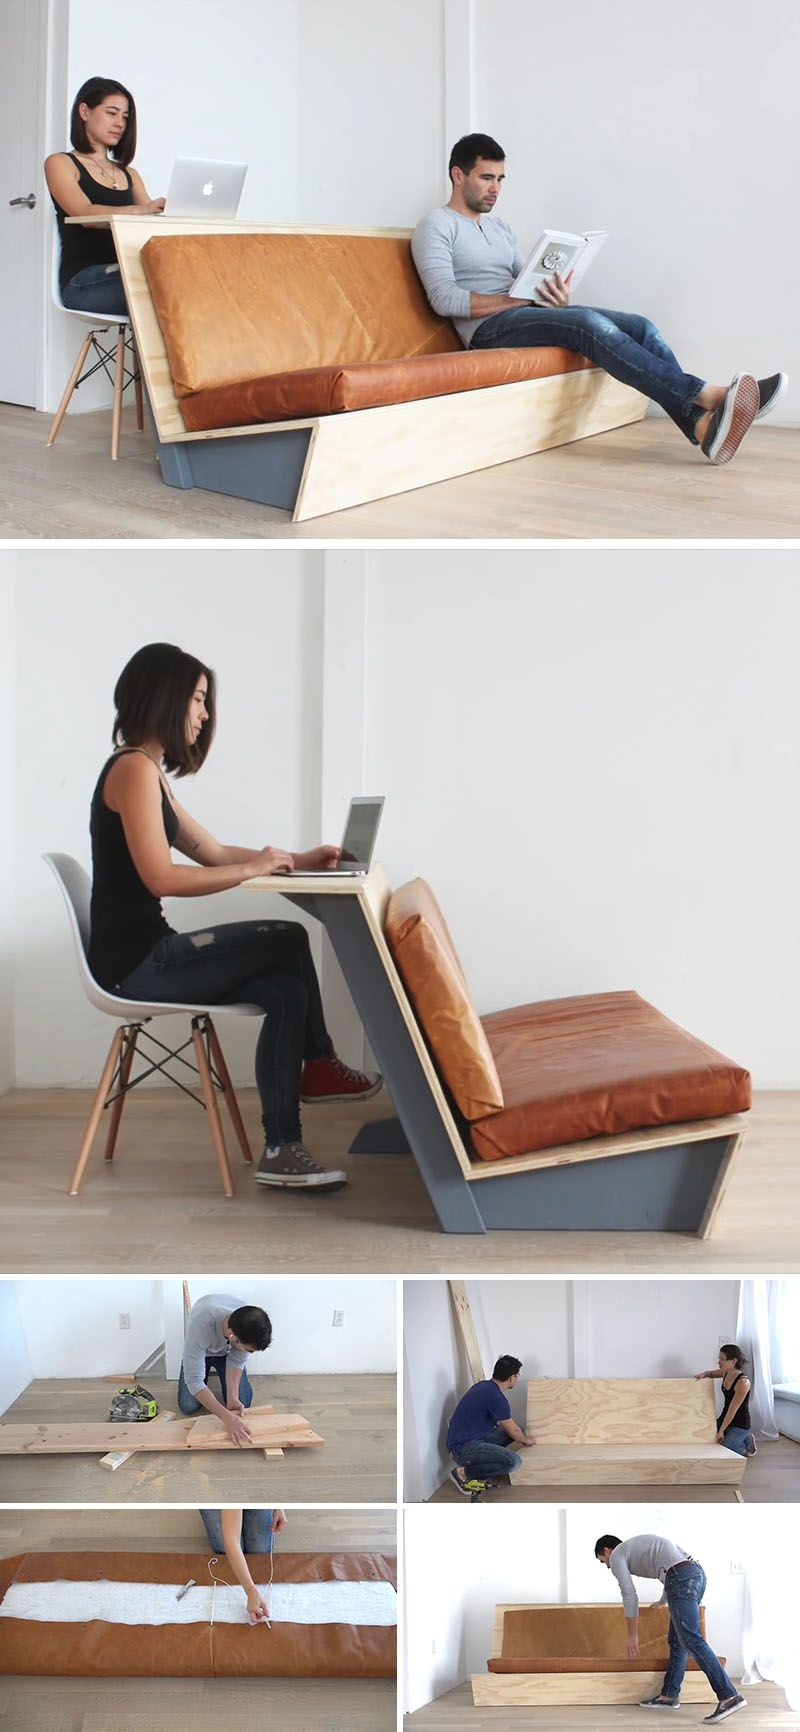 modern diy furniture. this tutorial for a diy modern couch teaches you how to create with wood frame and leather cushions that also doubles as diy furniture